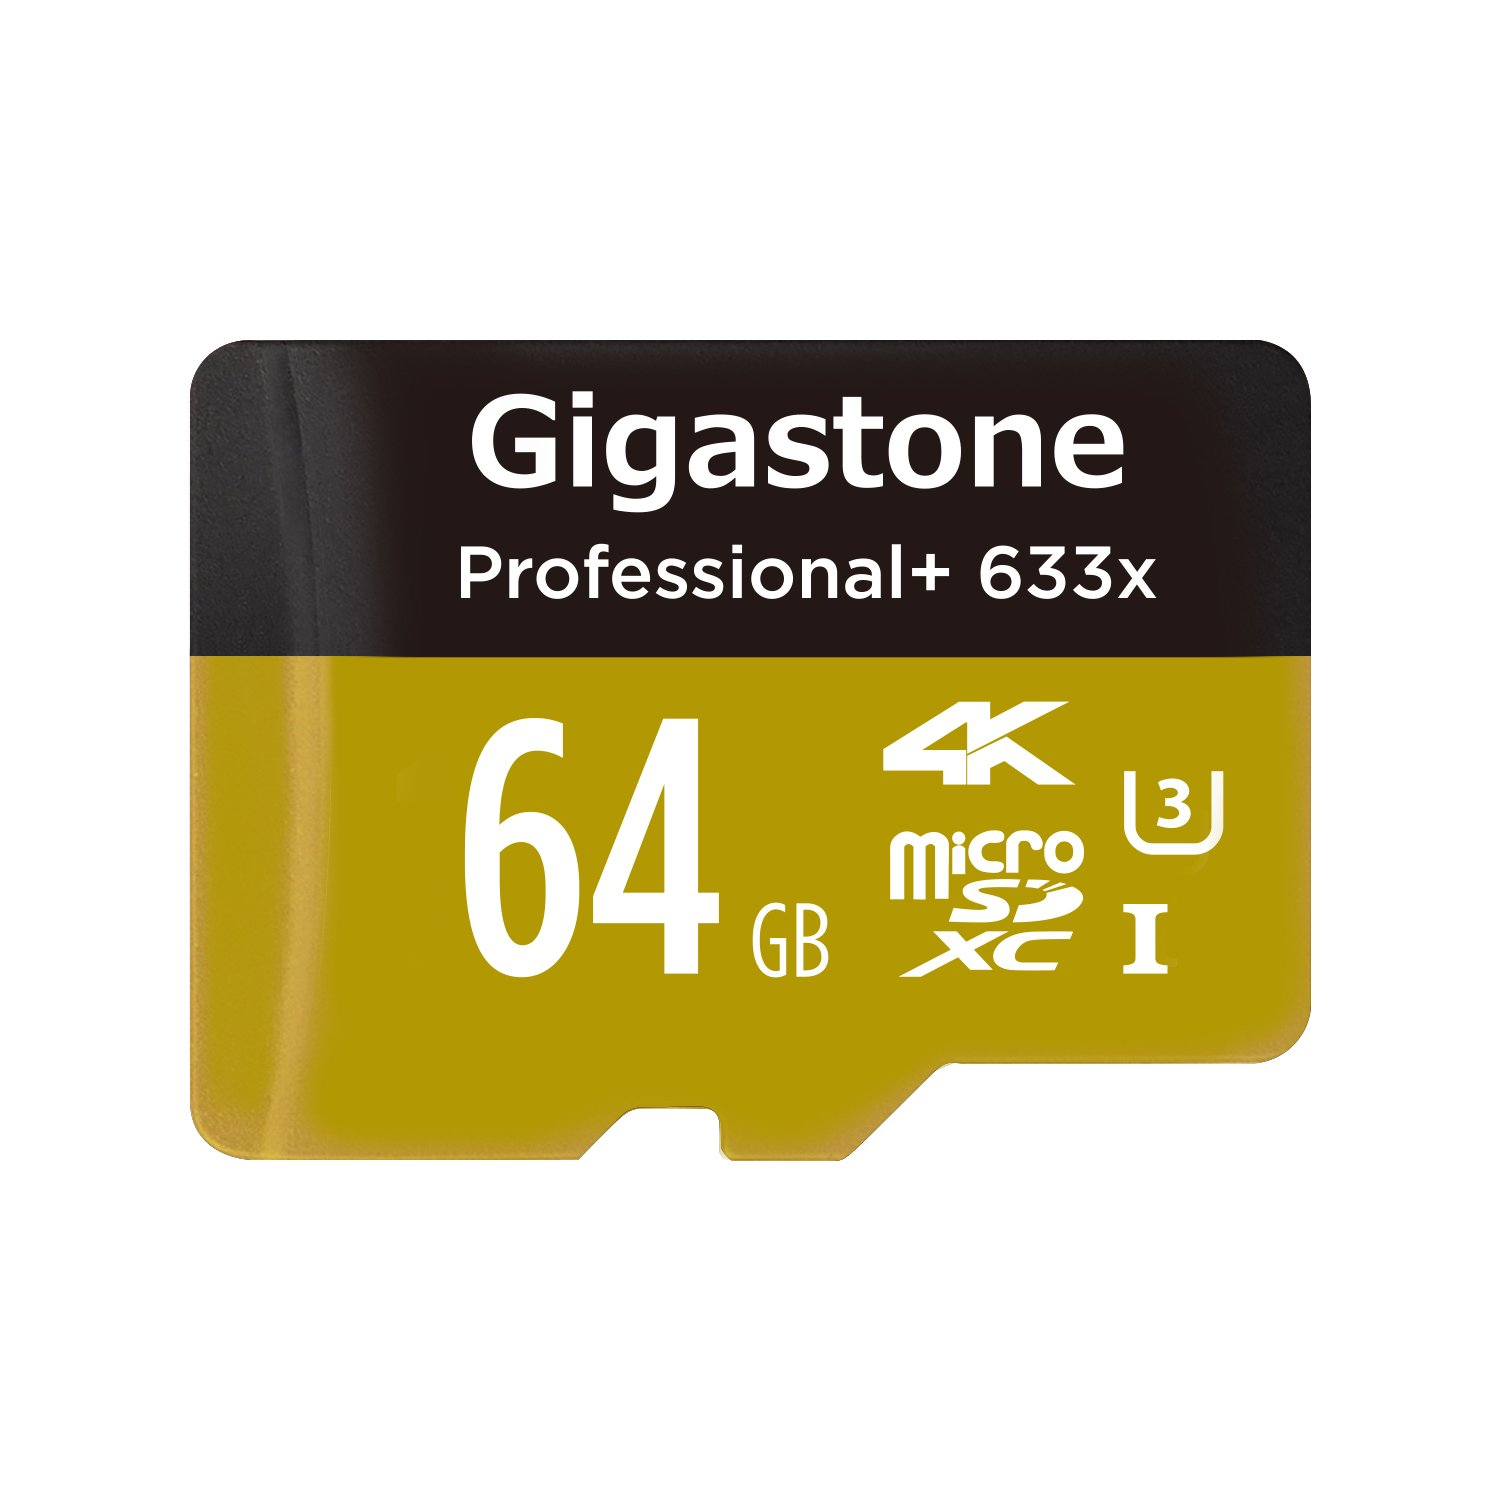 Cheap 64mb Micro Sd Card Price Find Deals Samsung 64 Gb Pro With Adapter Get Quotations Gigastone 64gb U3 Mlc 4k Up To 95 90 Mb